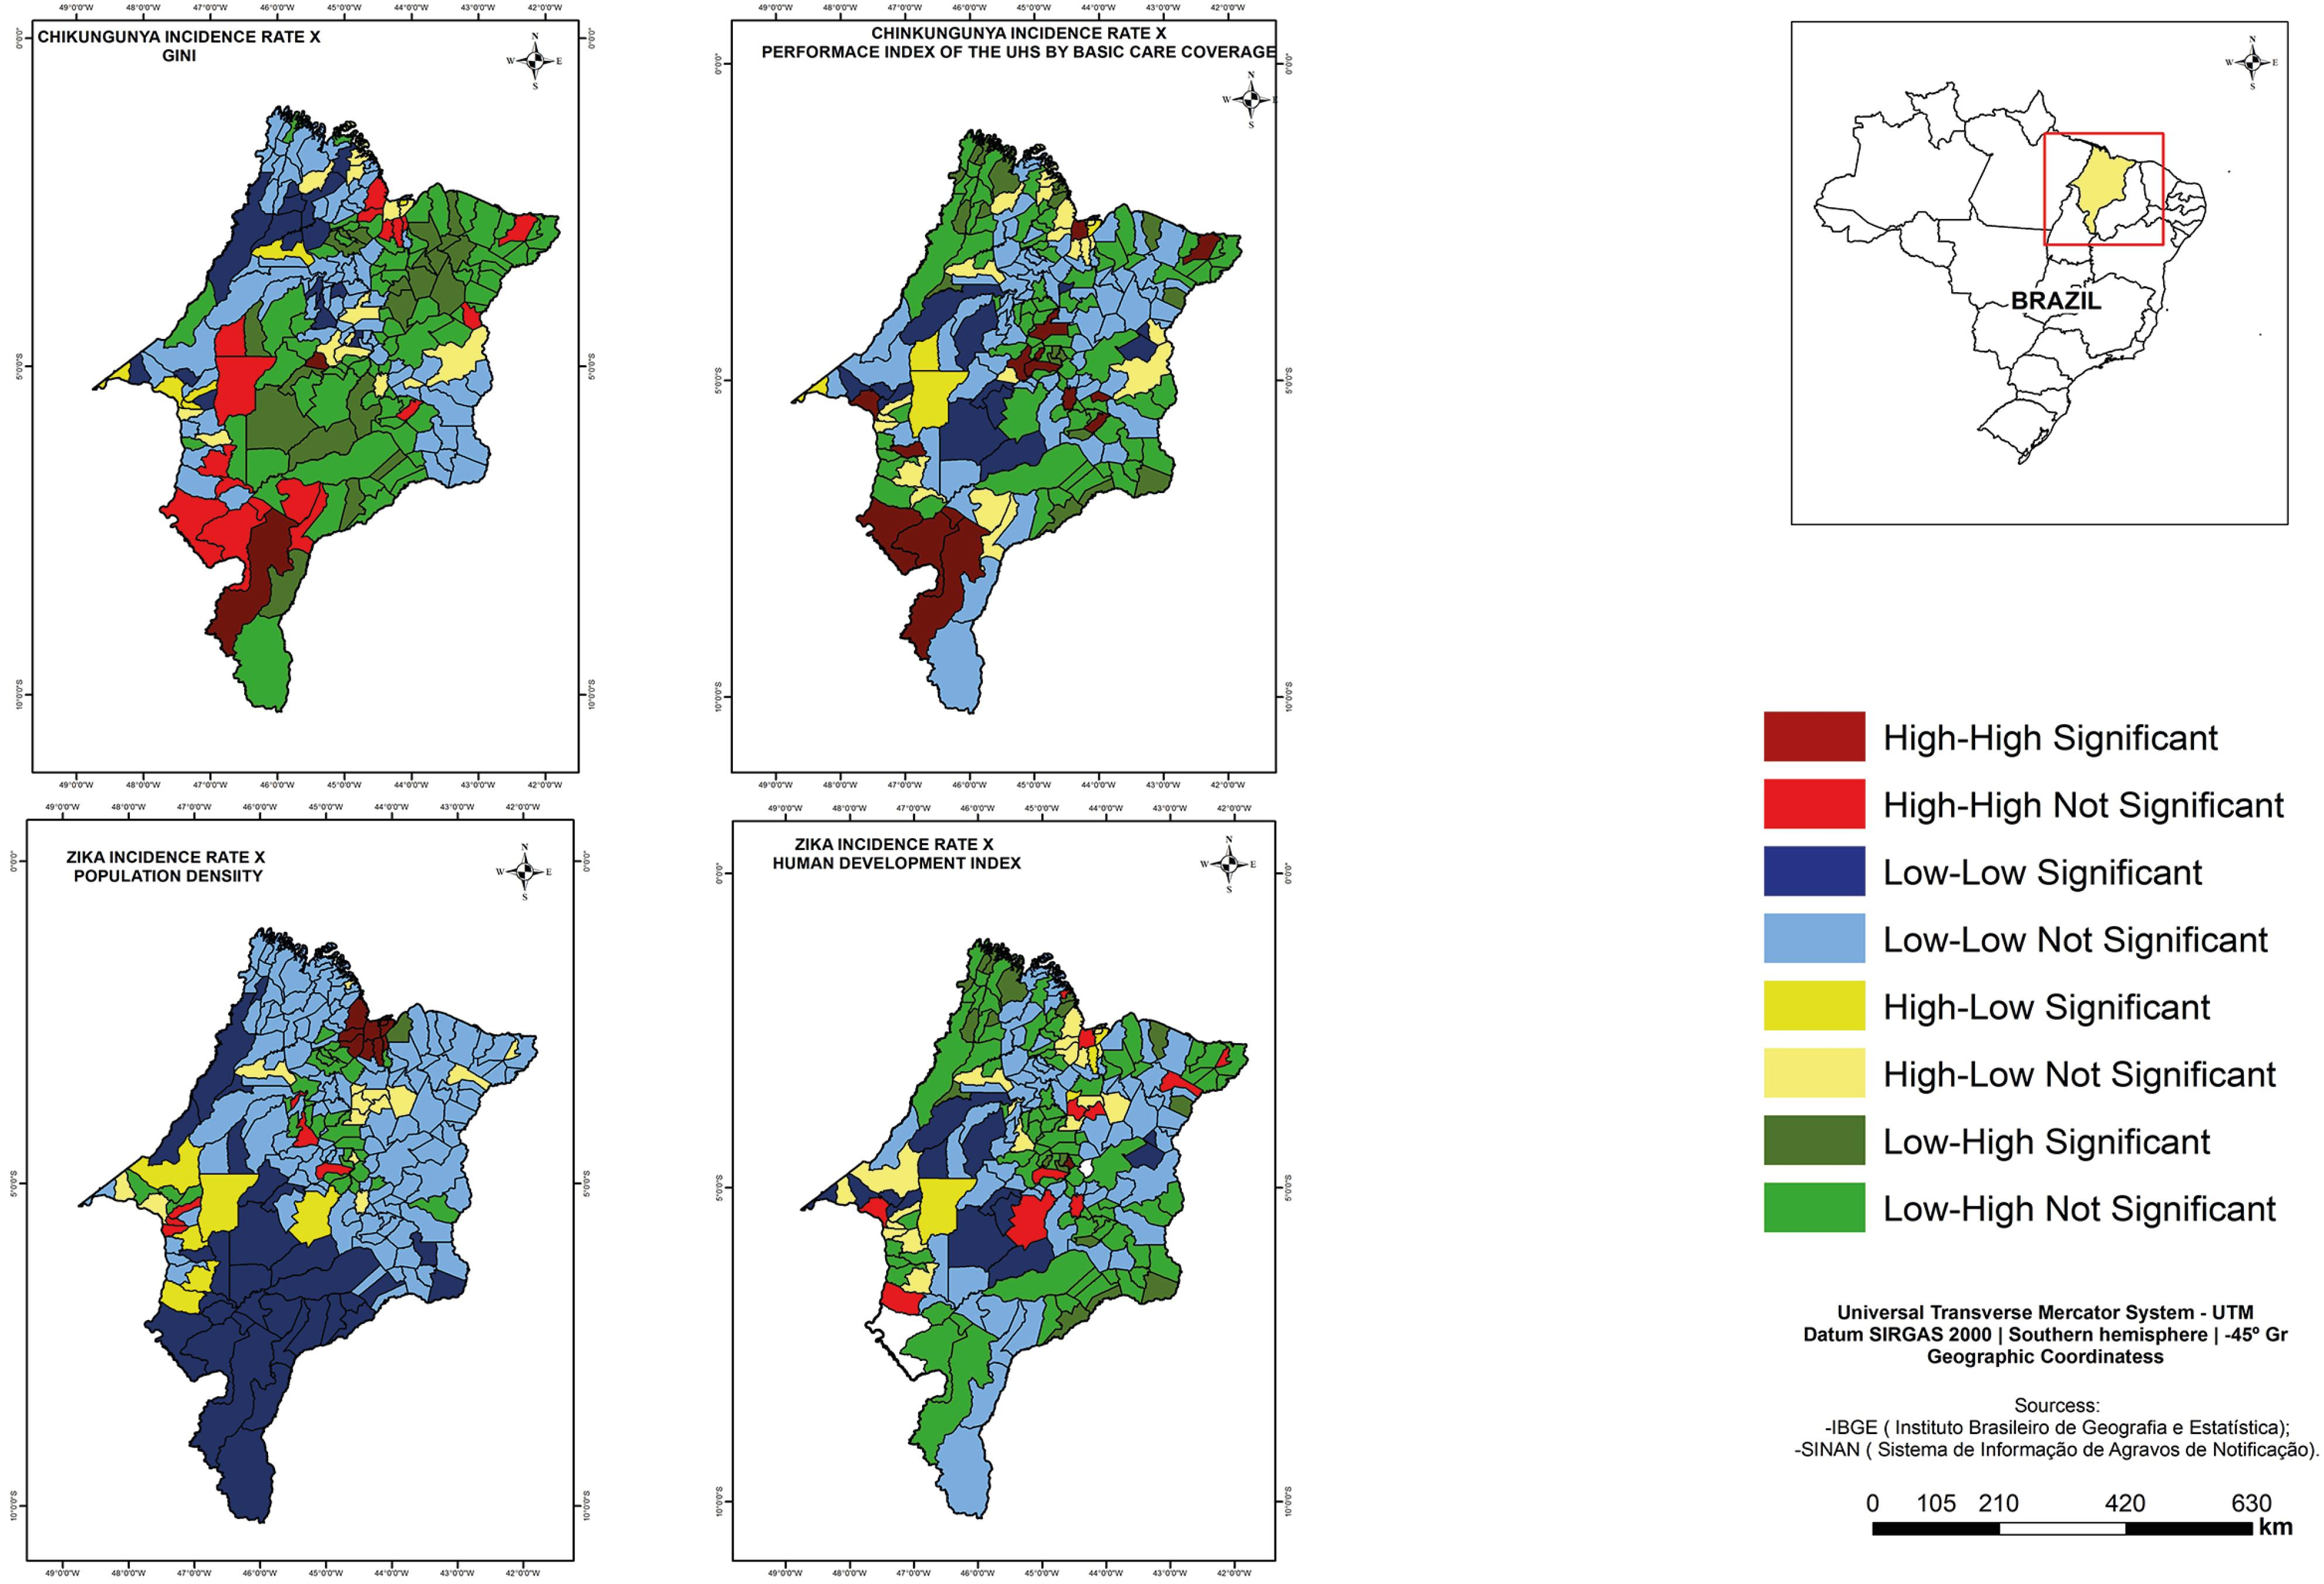 Lisa Cluster Map of the spatial correlations between the chikungunya fever incidence rate, Gini Index and Performance Index of Unified Health System by basic care coverage between the zika virus infections incidence rate, the population density and Municipal Human Development Index. Maranhao, 2015-2016.